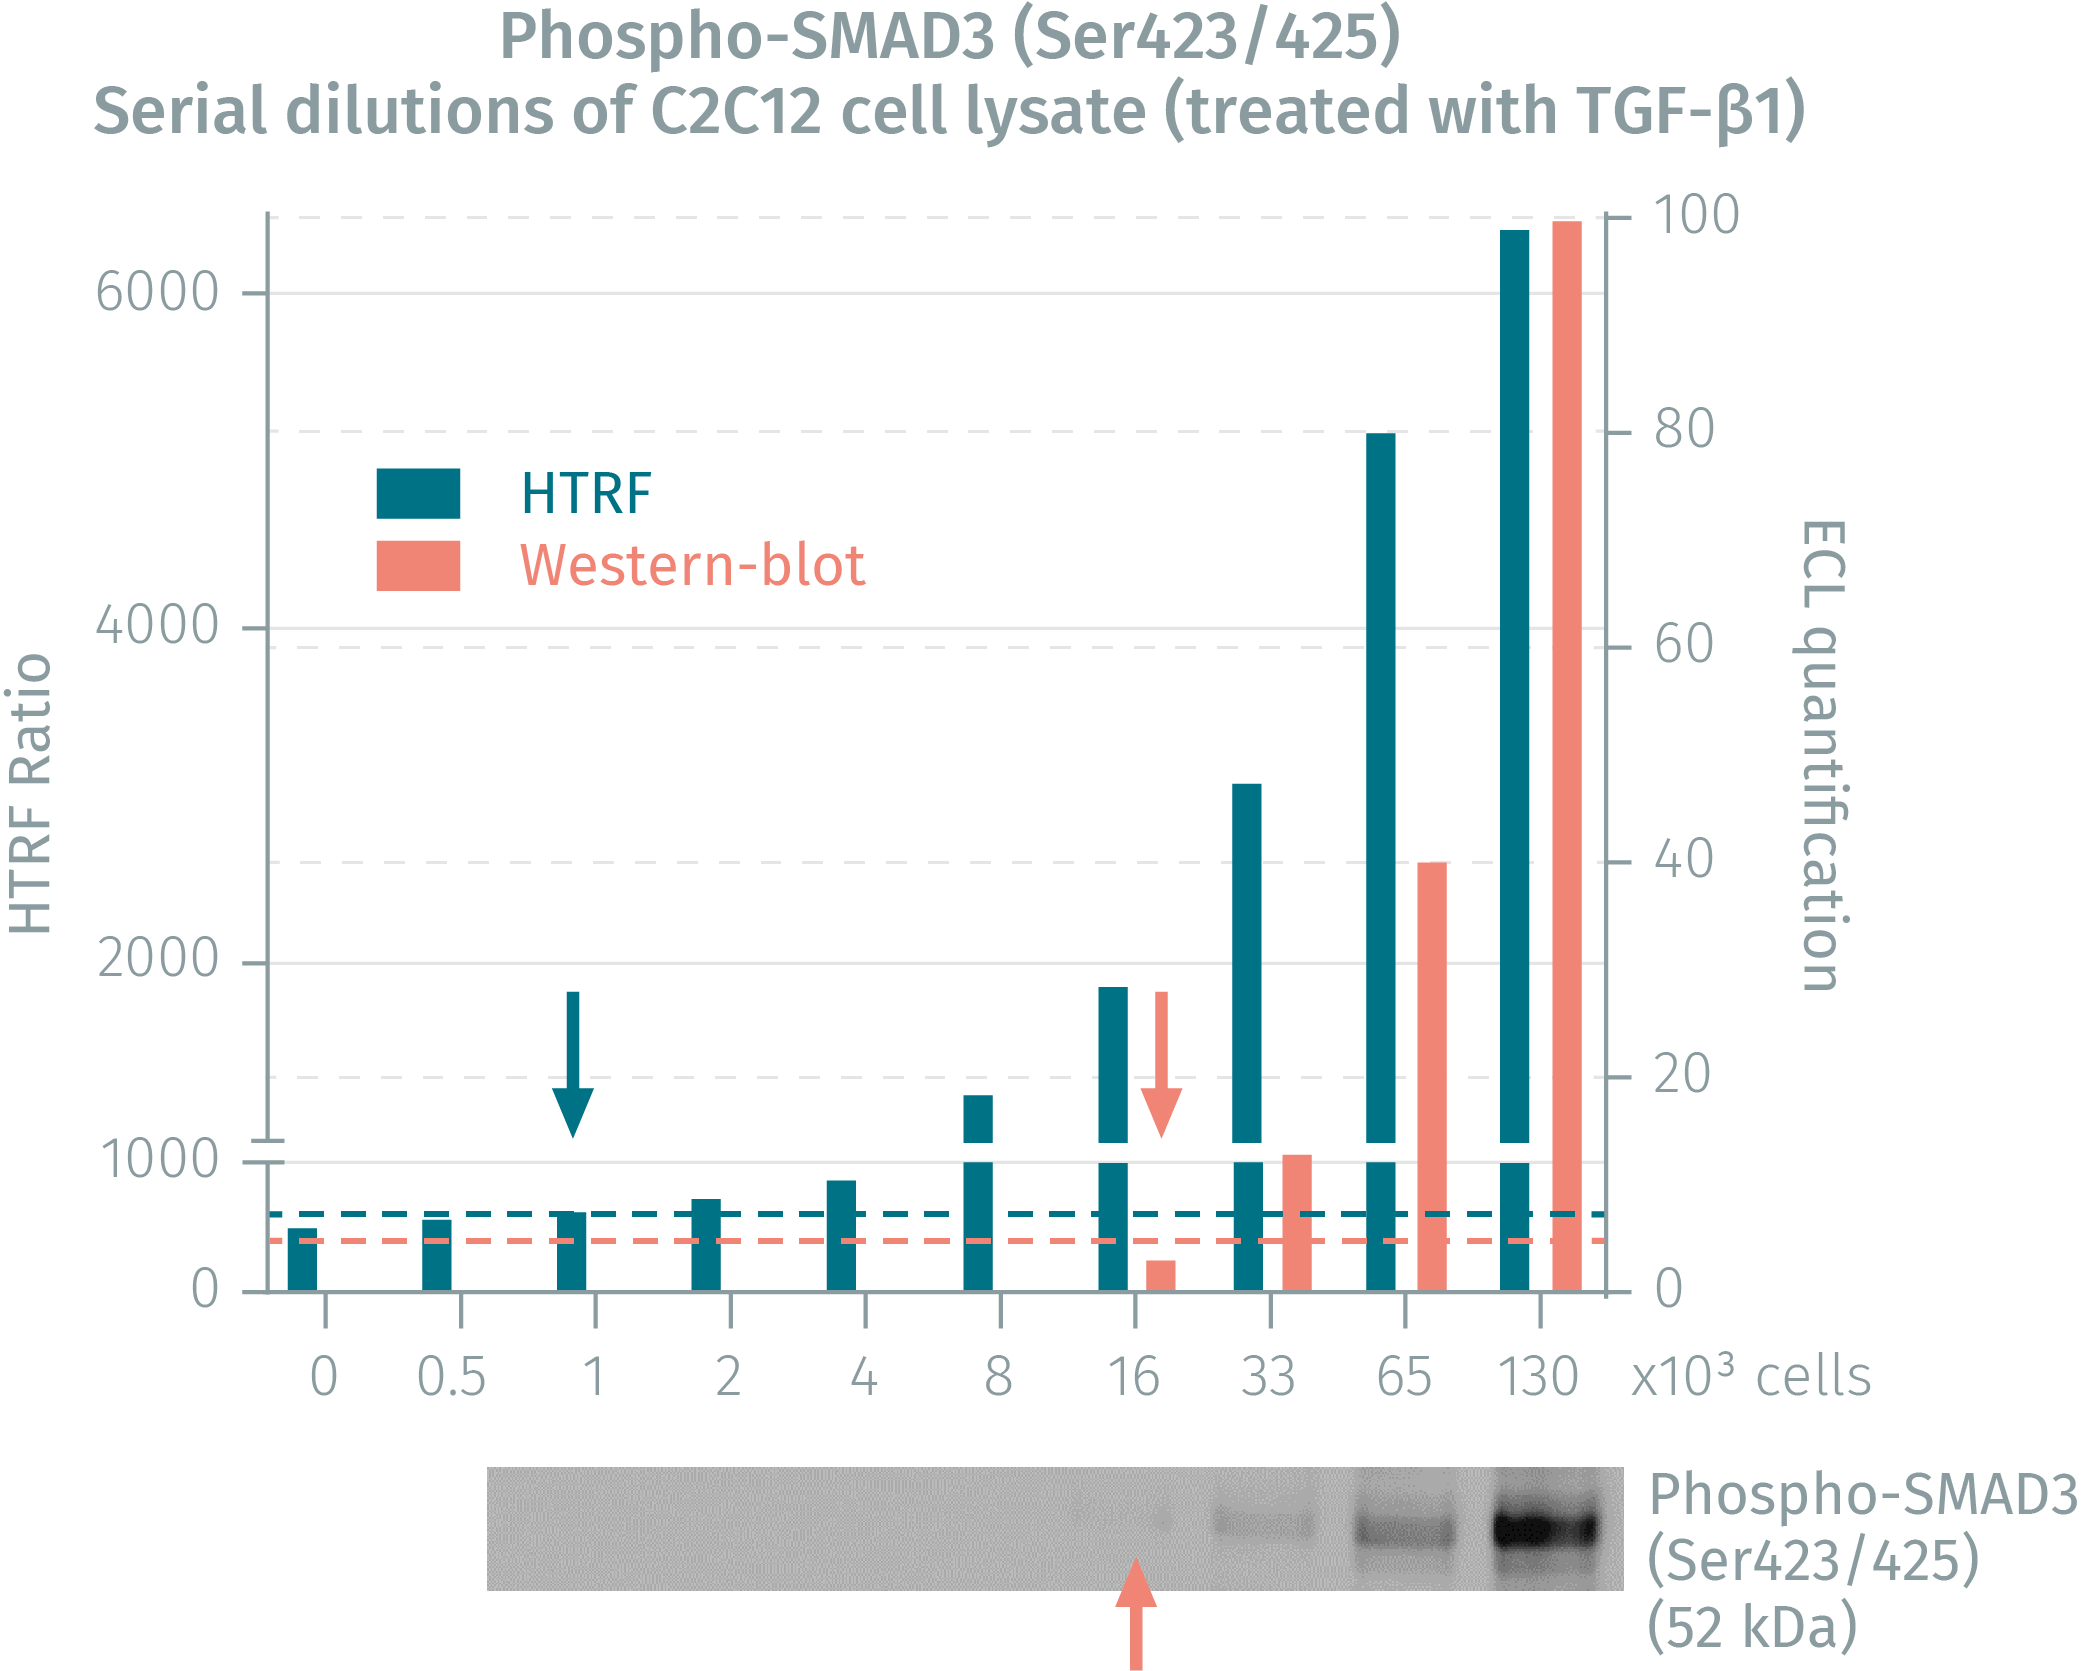 HTRF assay compared to Western Blot using phospho-SMAD3 assay